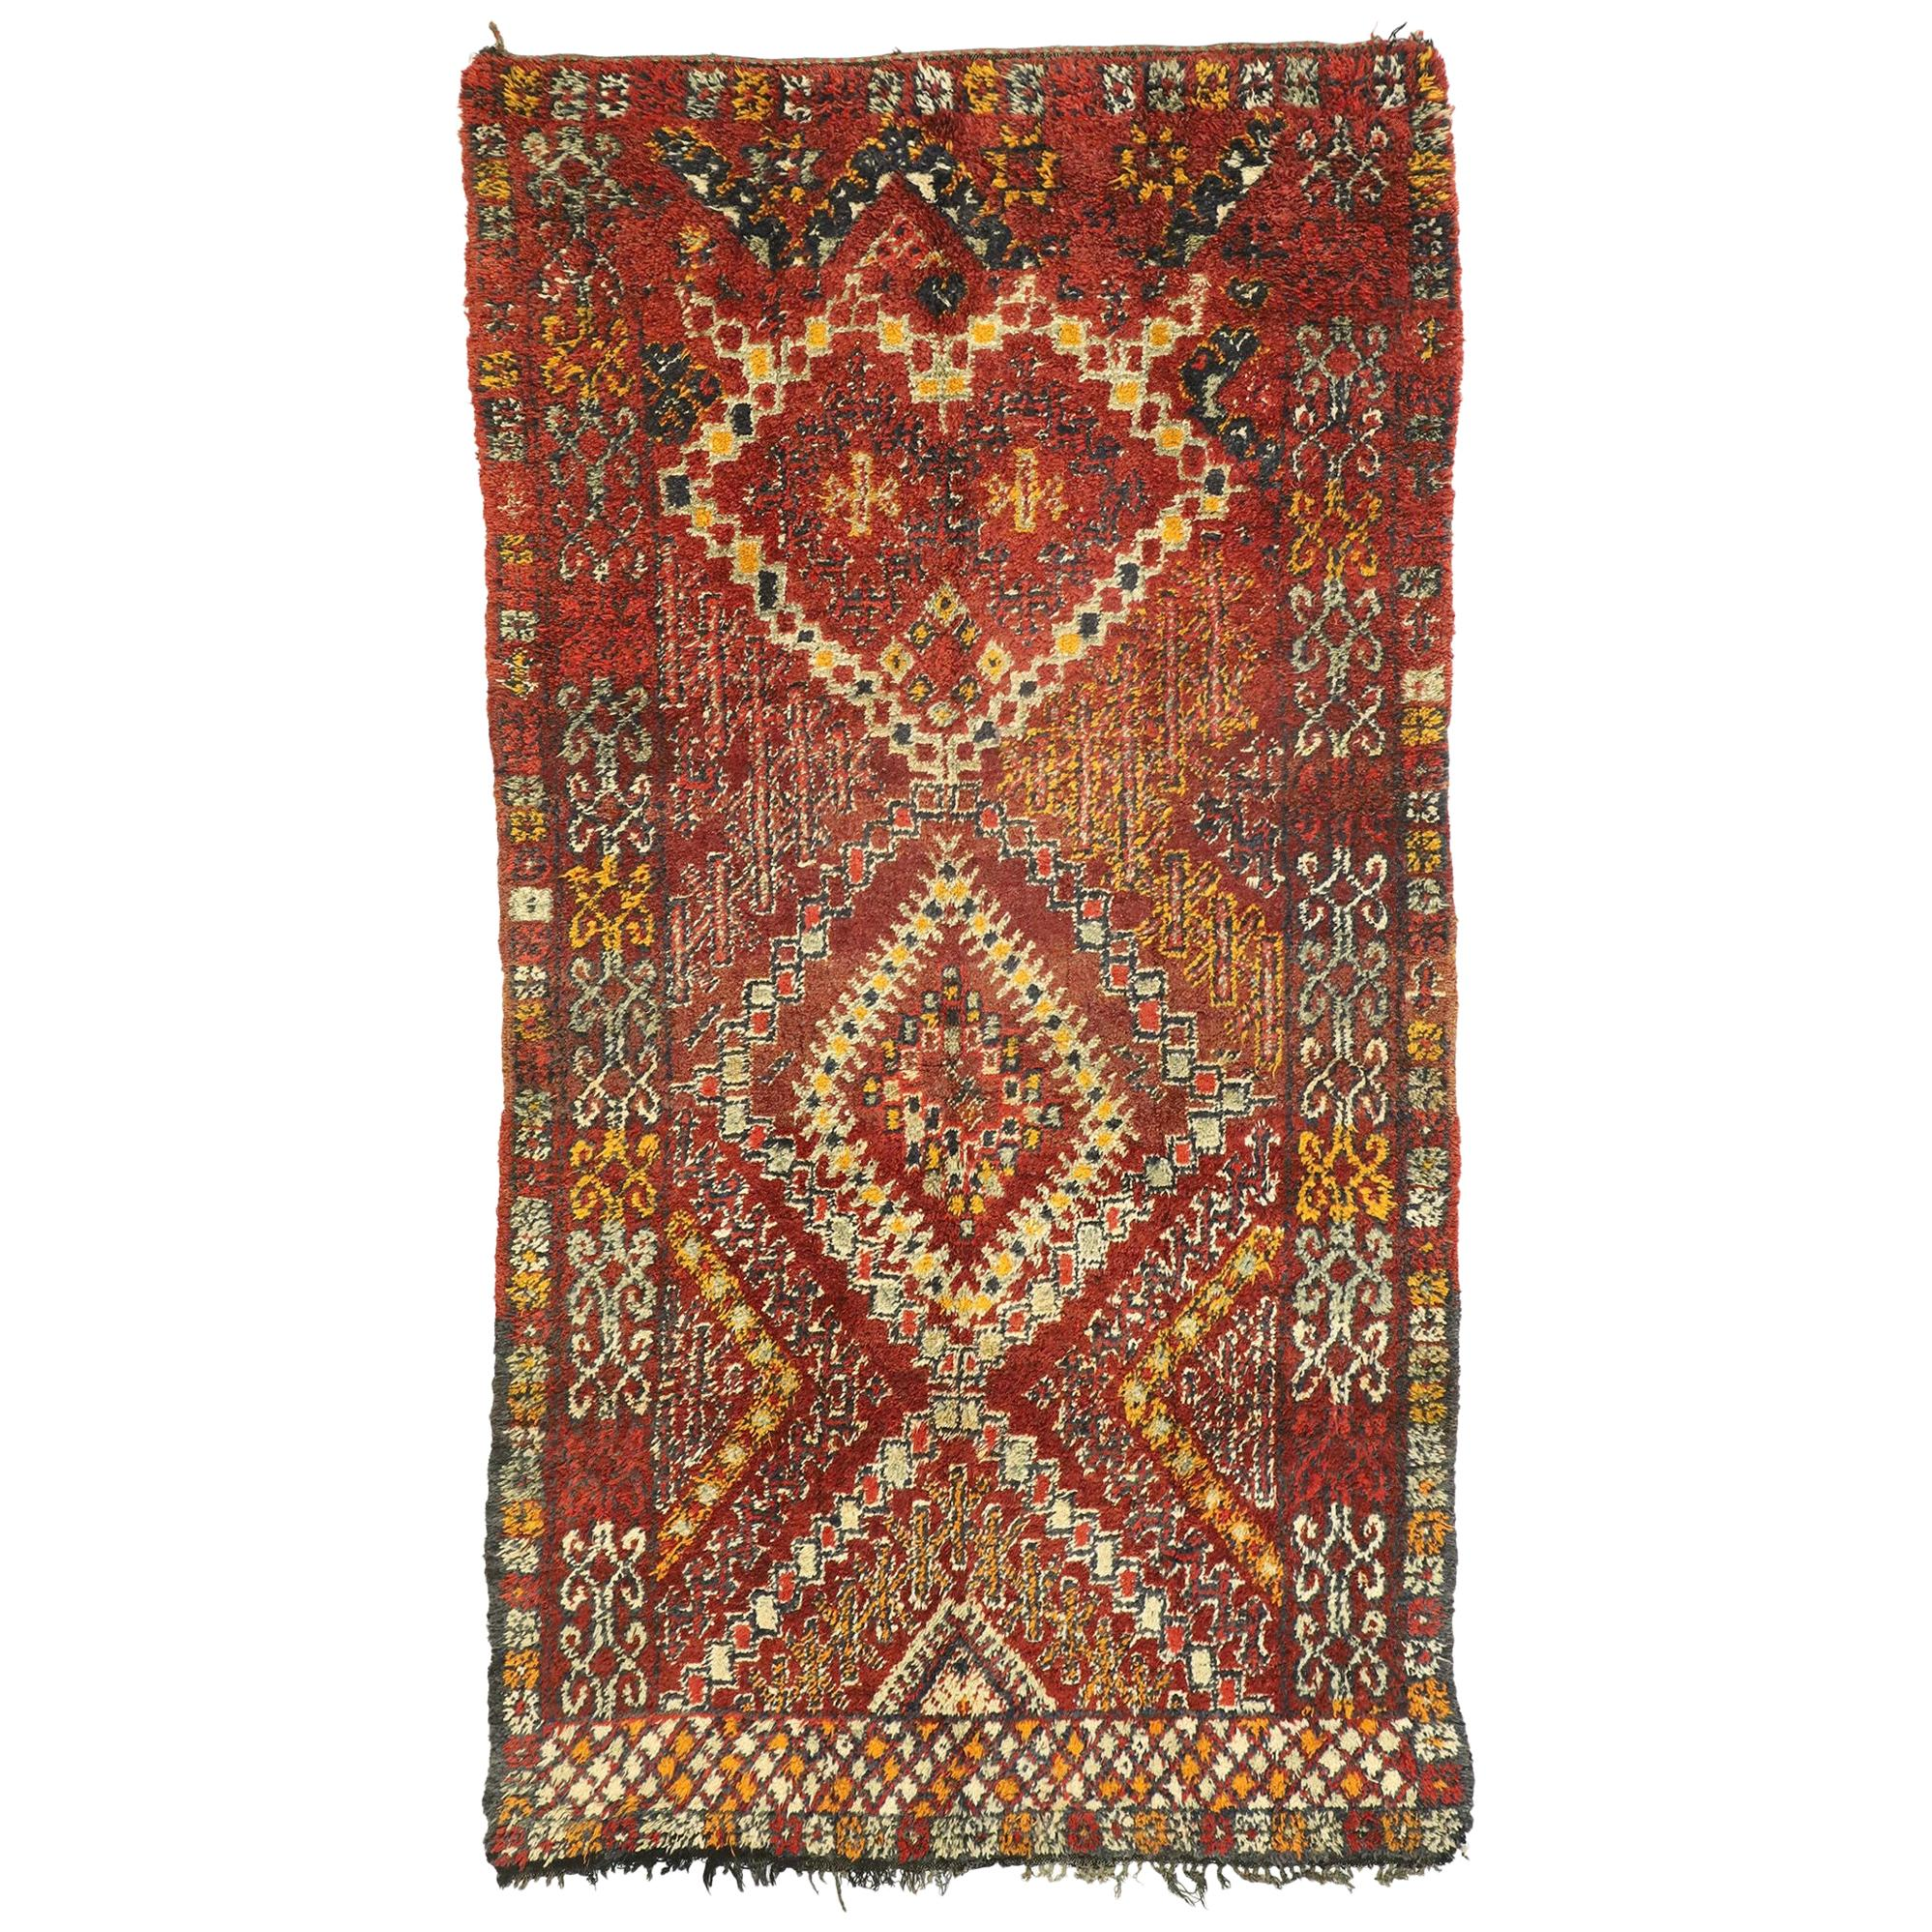 Vintage Berber Moroccan Rug with Mid-Century Modern Style